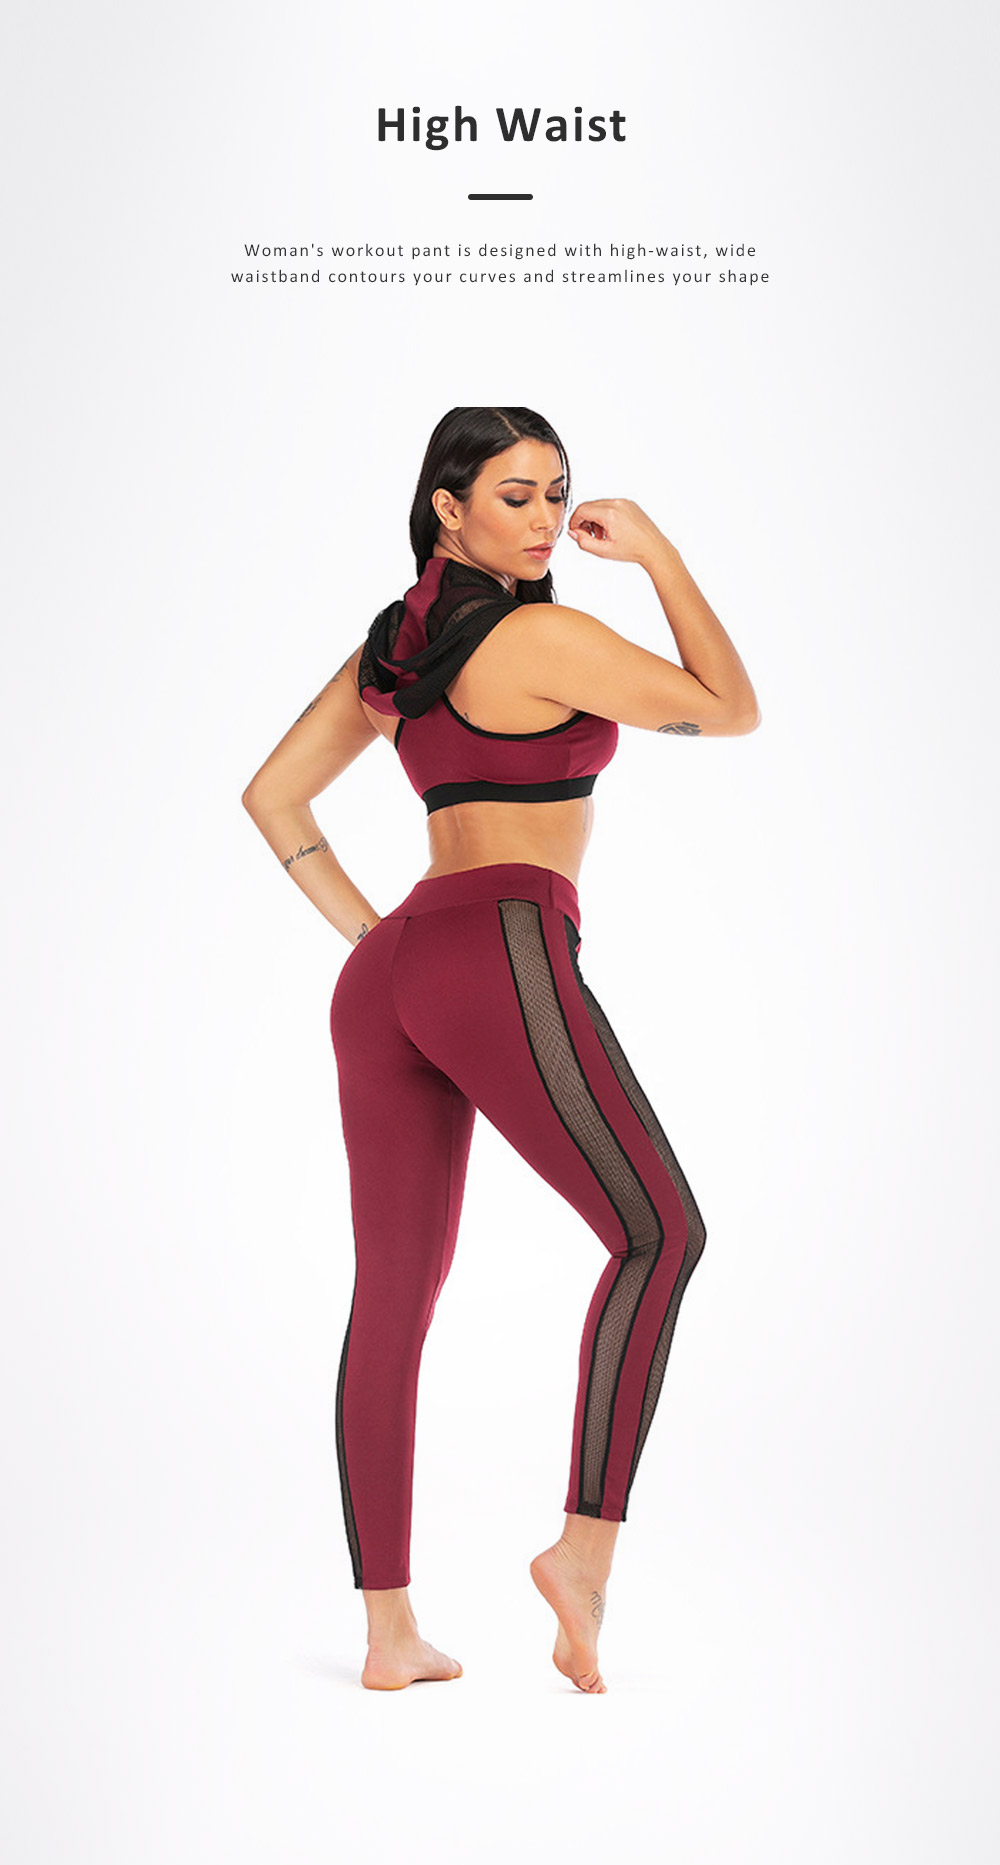 Women Jogging Sport Suit Workout Set Gauze Splicing Stretchy Comfortable 2 Pieces Suits Breathing High Waist Pant & Top Athletic Outfit 2